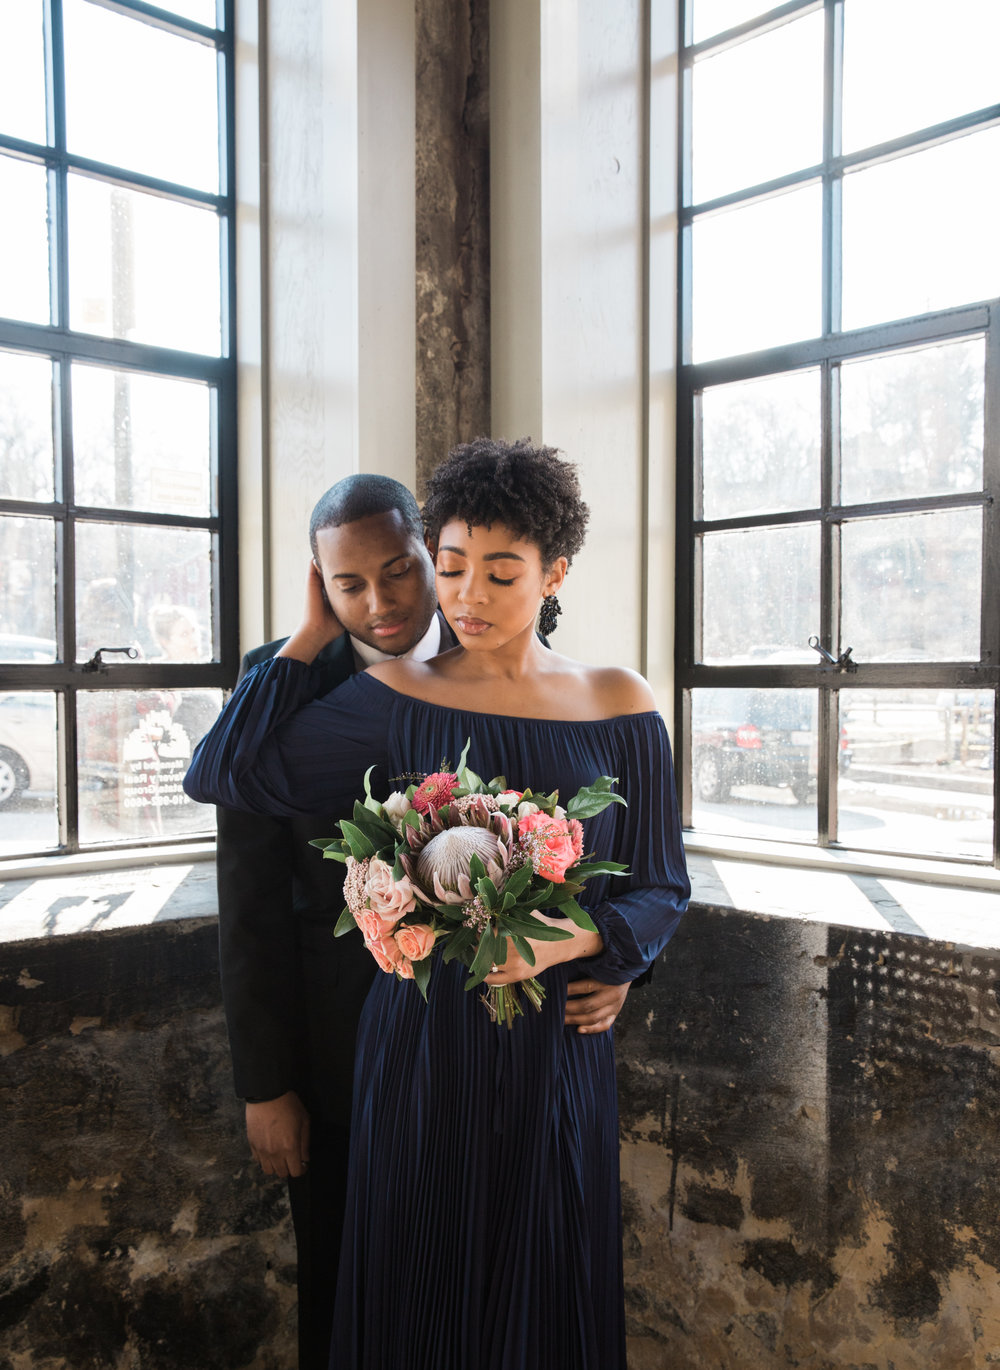 Natural Hair Black Bride in Baltimore Main Street Ballroom Engagement Session by Megapixels Media Photography-18.jpg